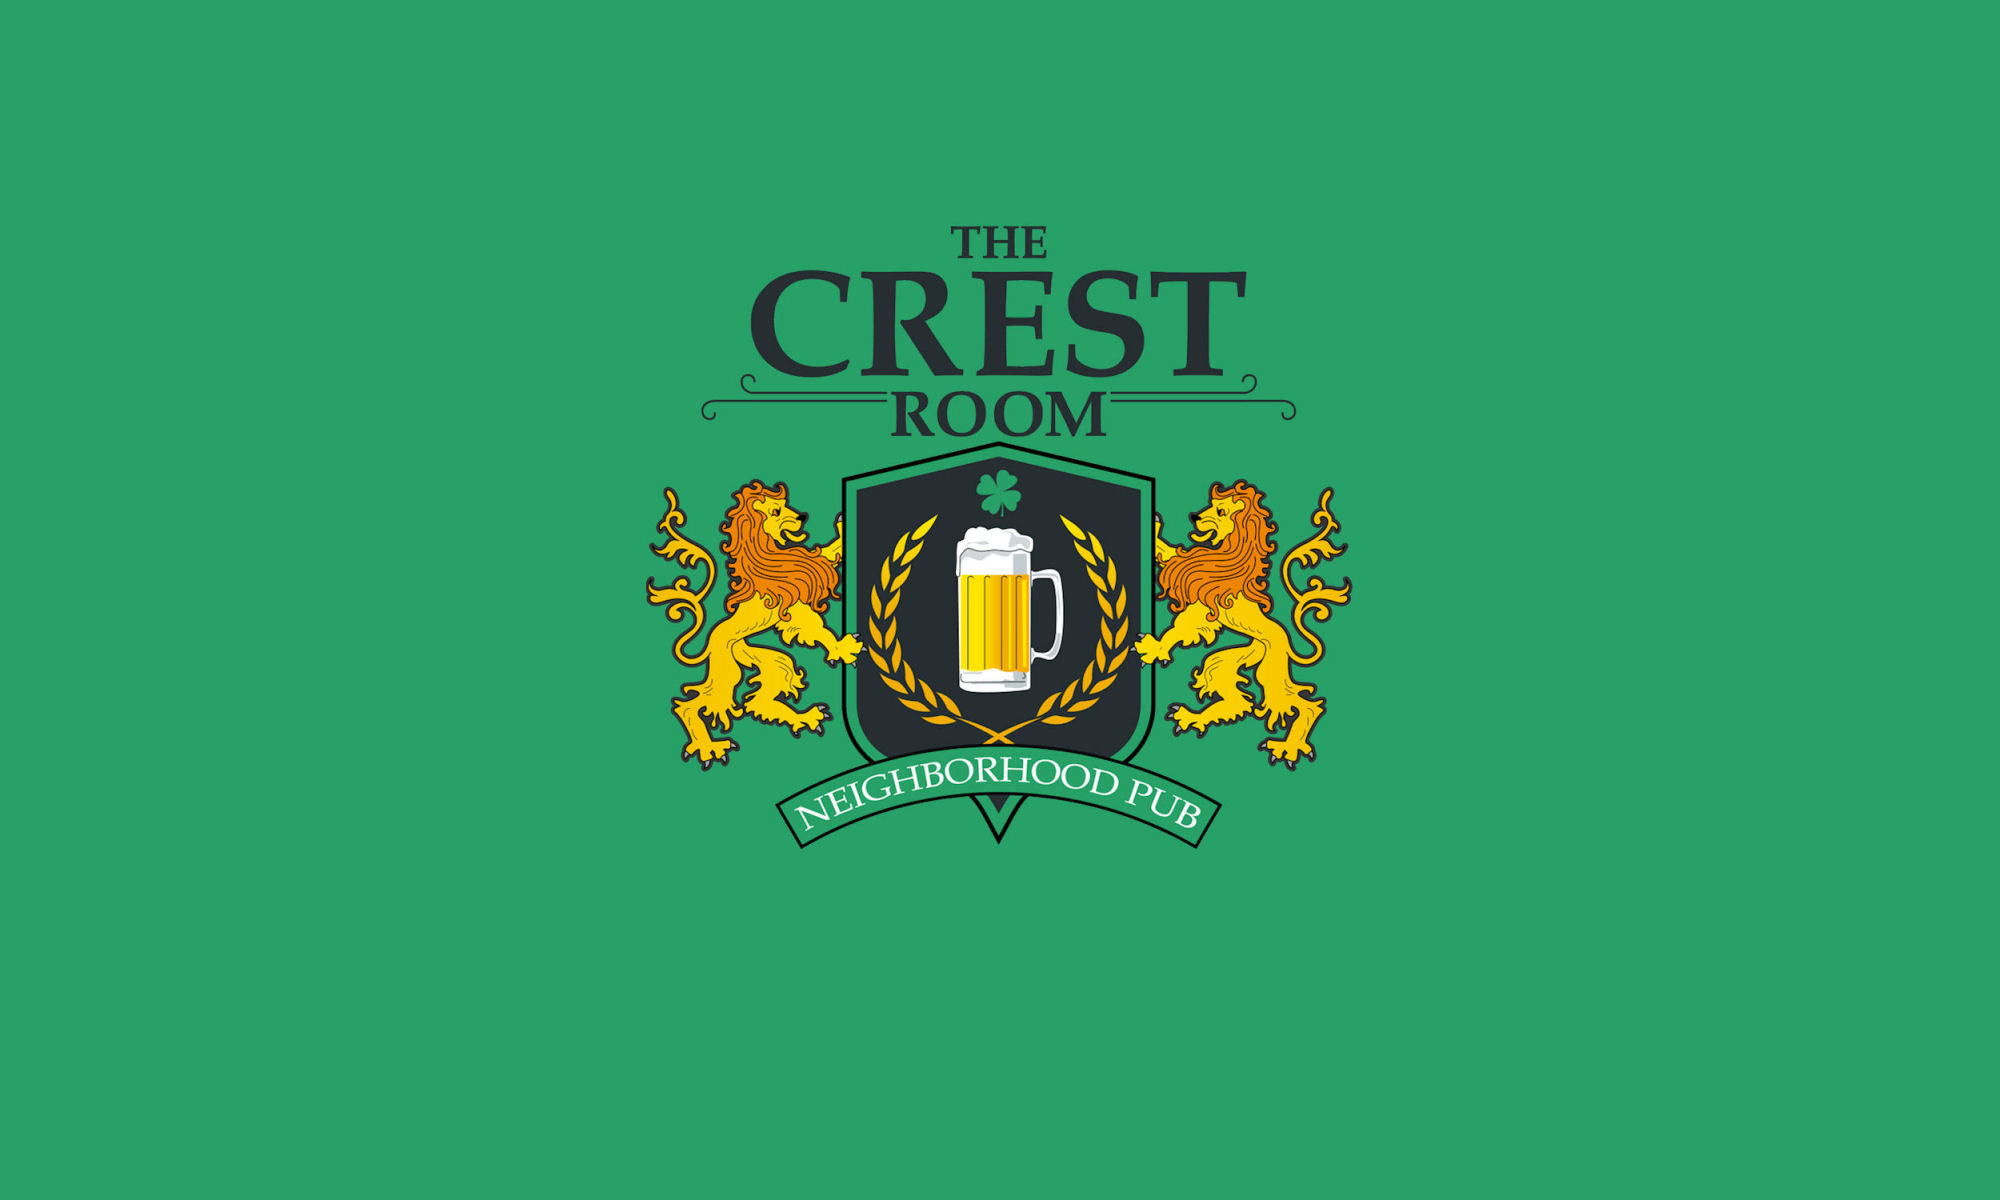 The Crest Room